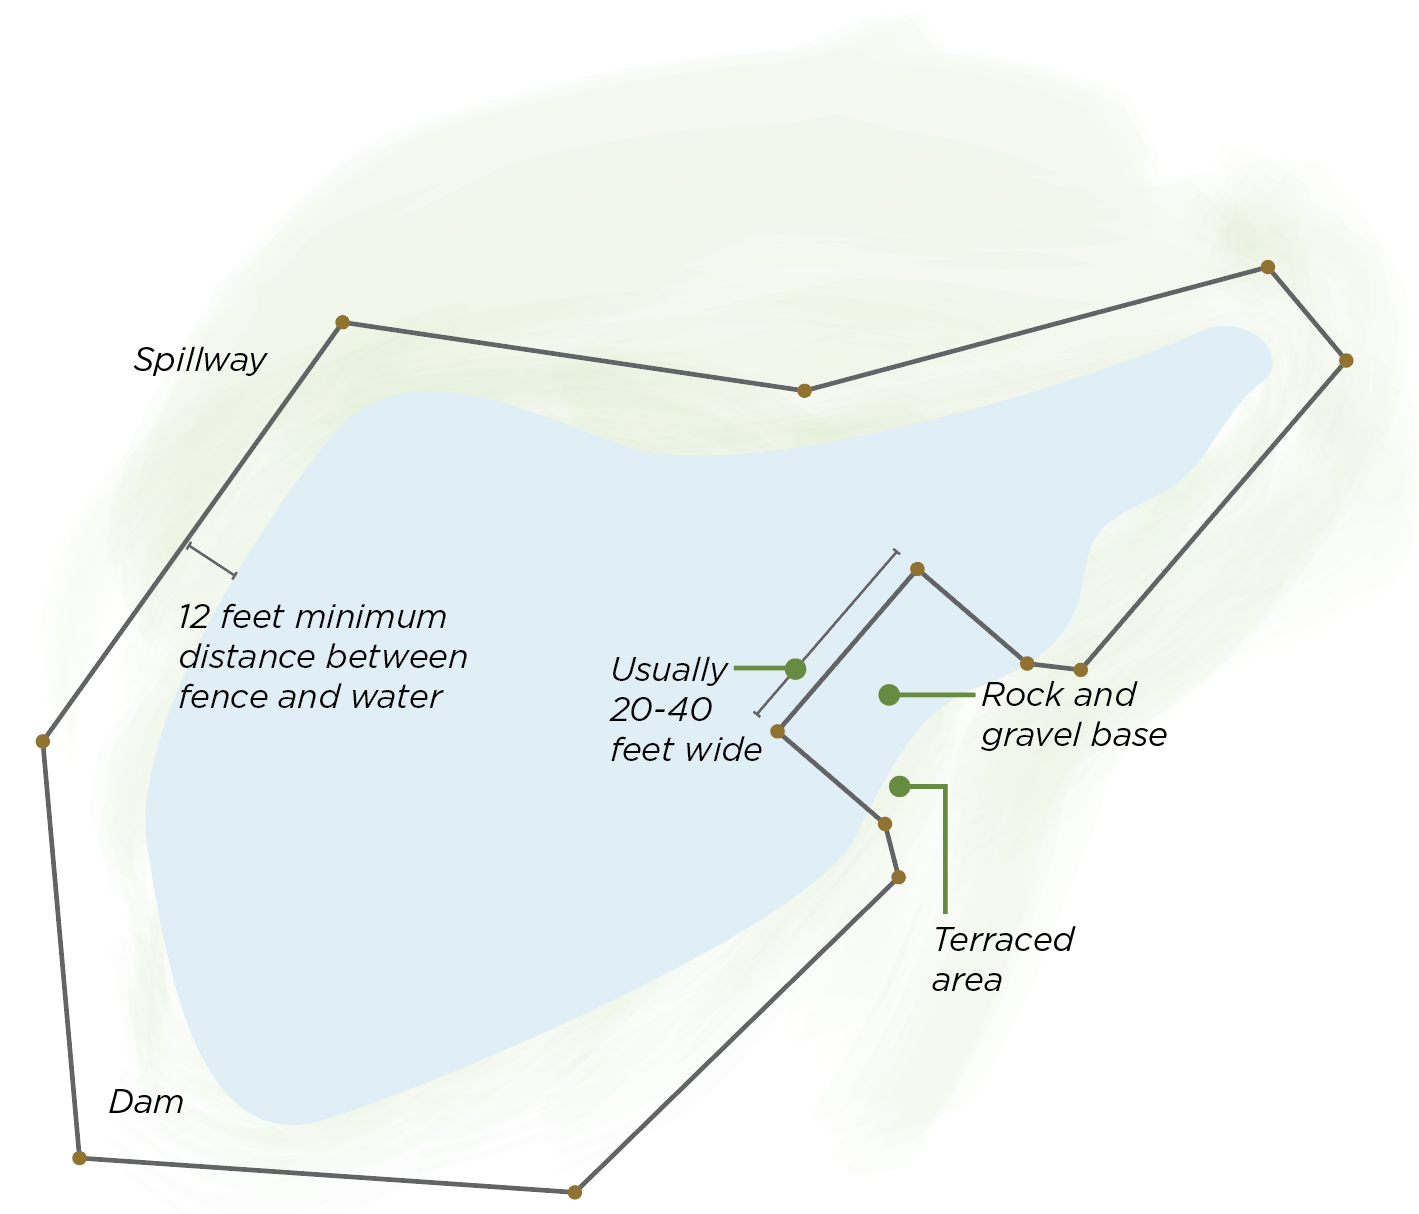 Map showing good pond guidelines for attracting ducks to your pond.